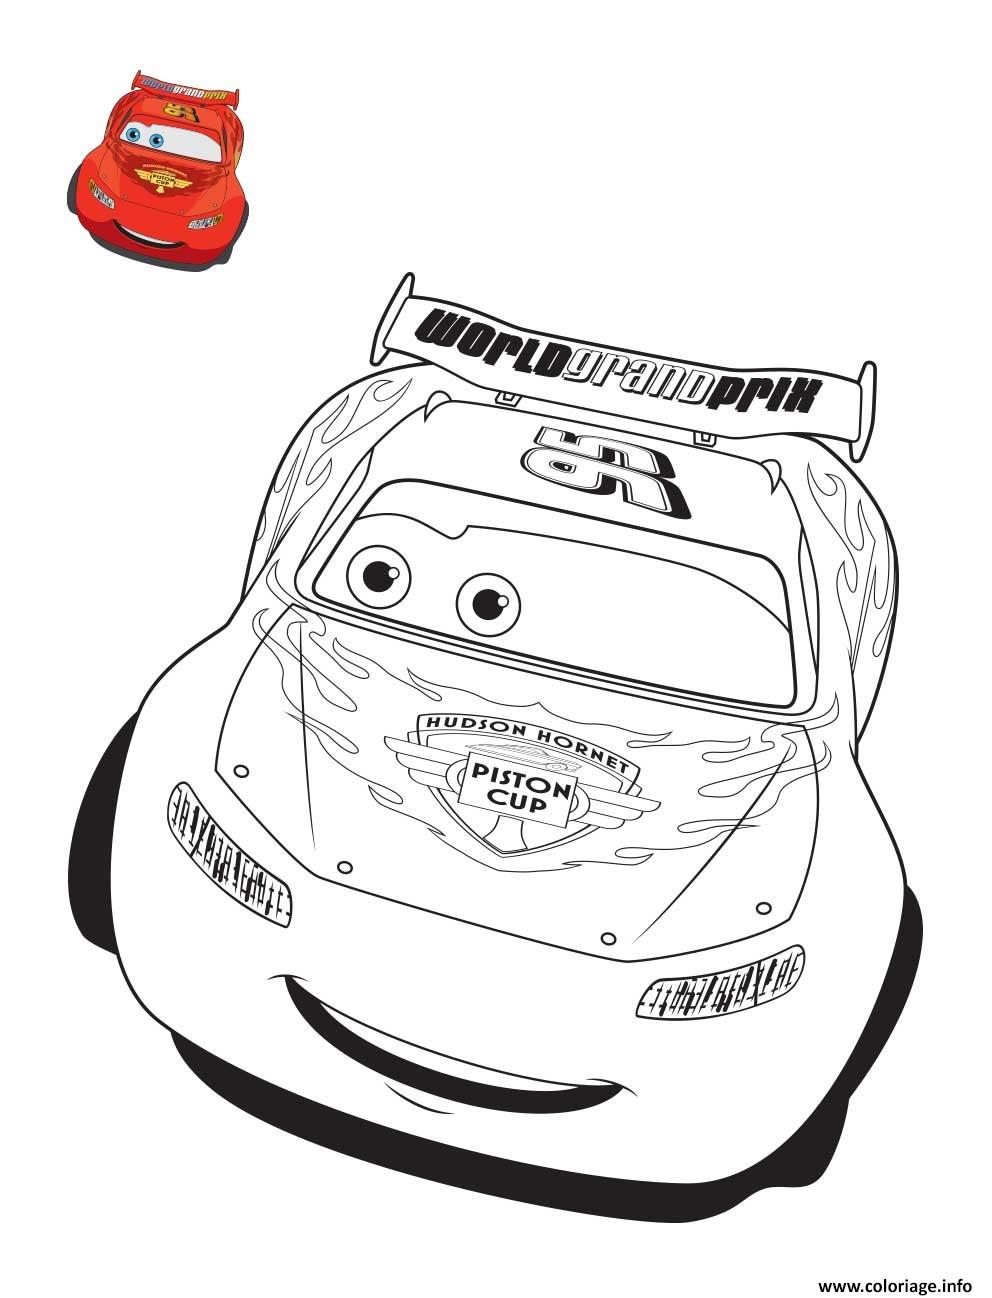 Coloriage cars 3 flash mcqueen confiant pour la course de - Flash mcqueen film gratuit ...